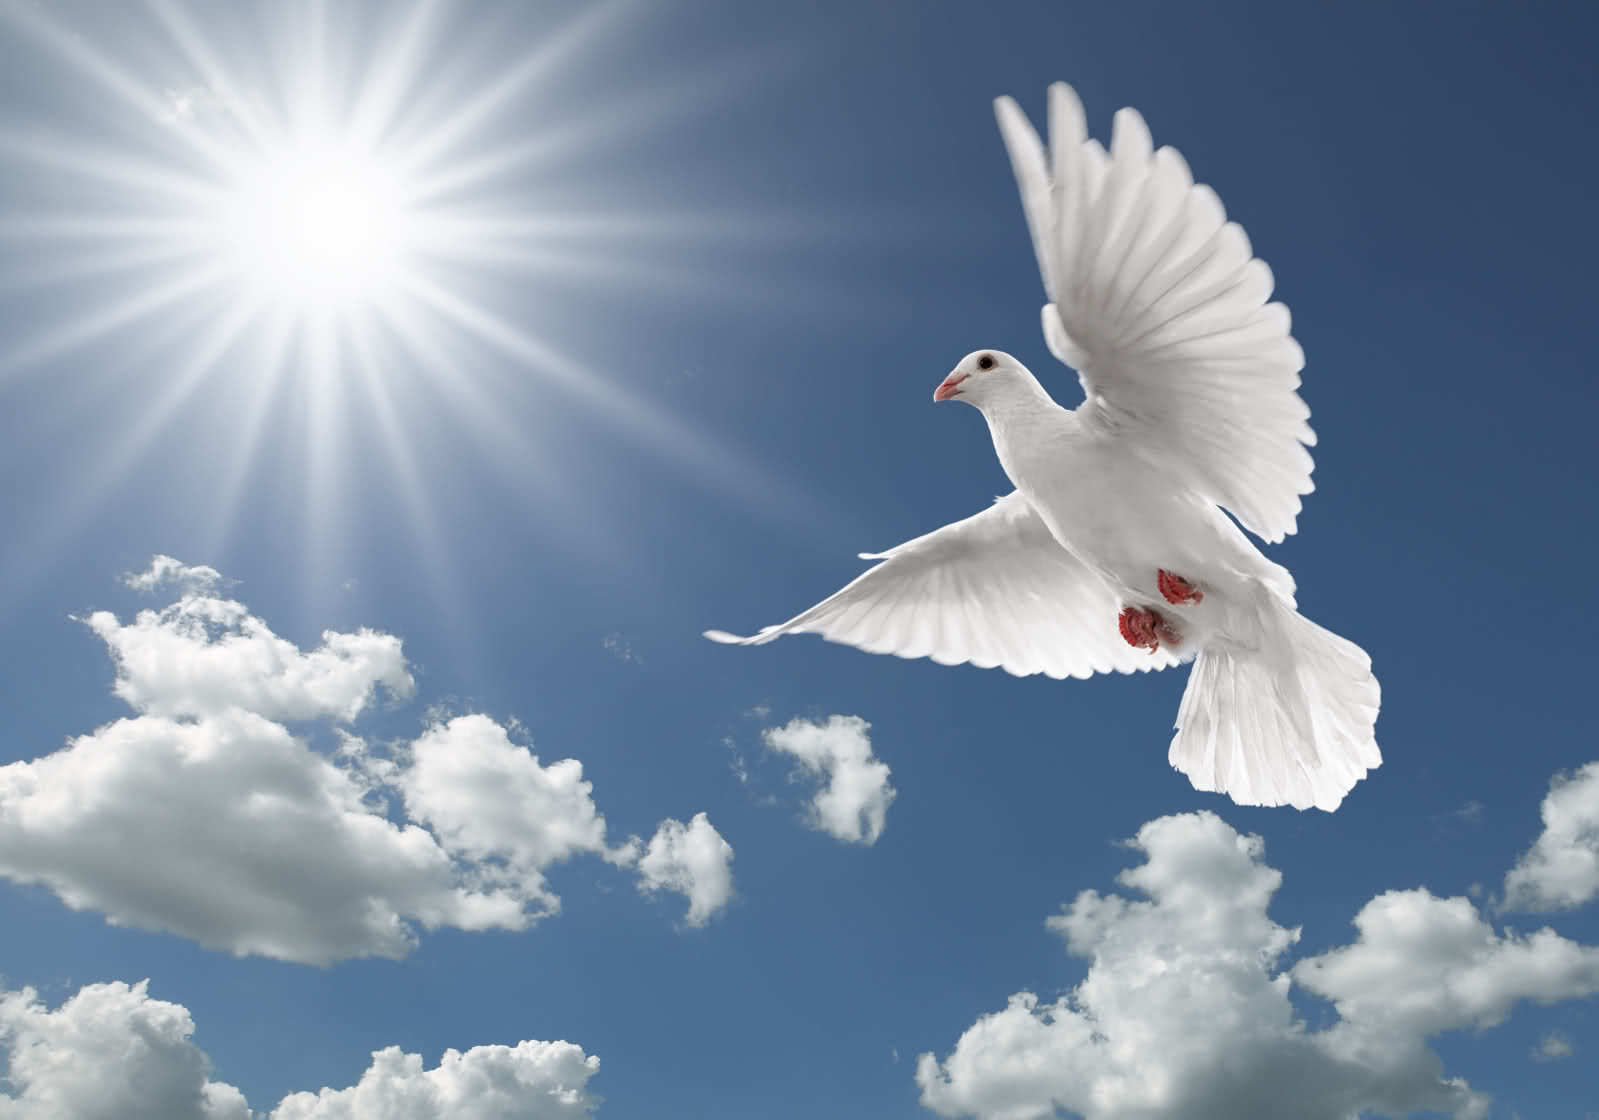 4 Pigeon Birds Free Download High Quality Hd Wallpapers Of Pigeon Birds 938 Flying Birds Hd Wallpapers